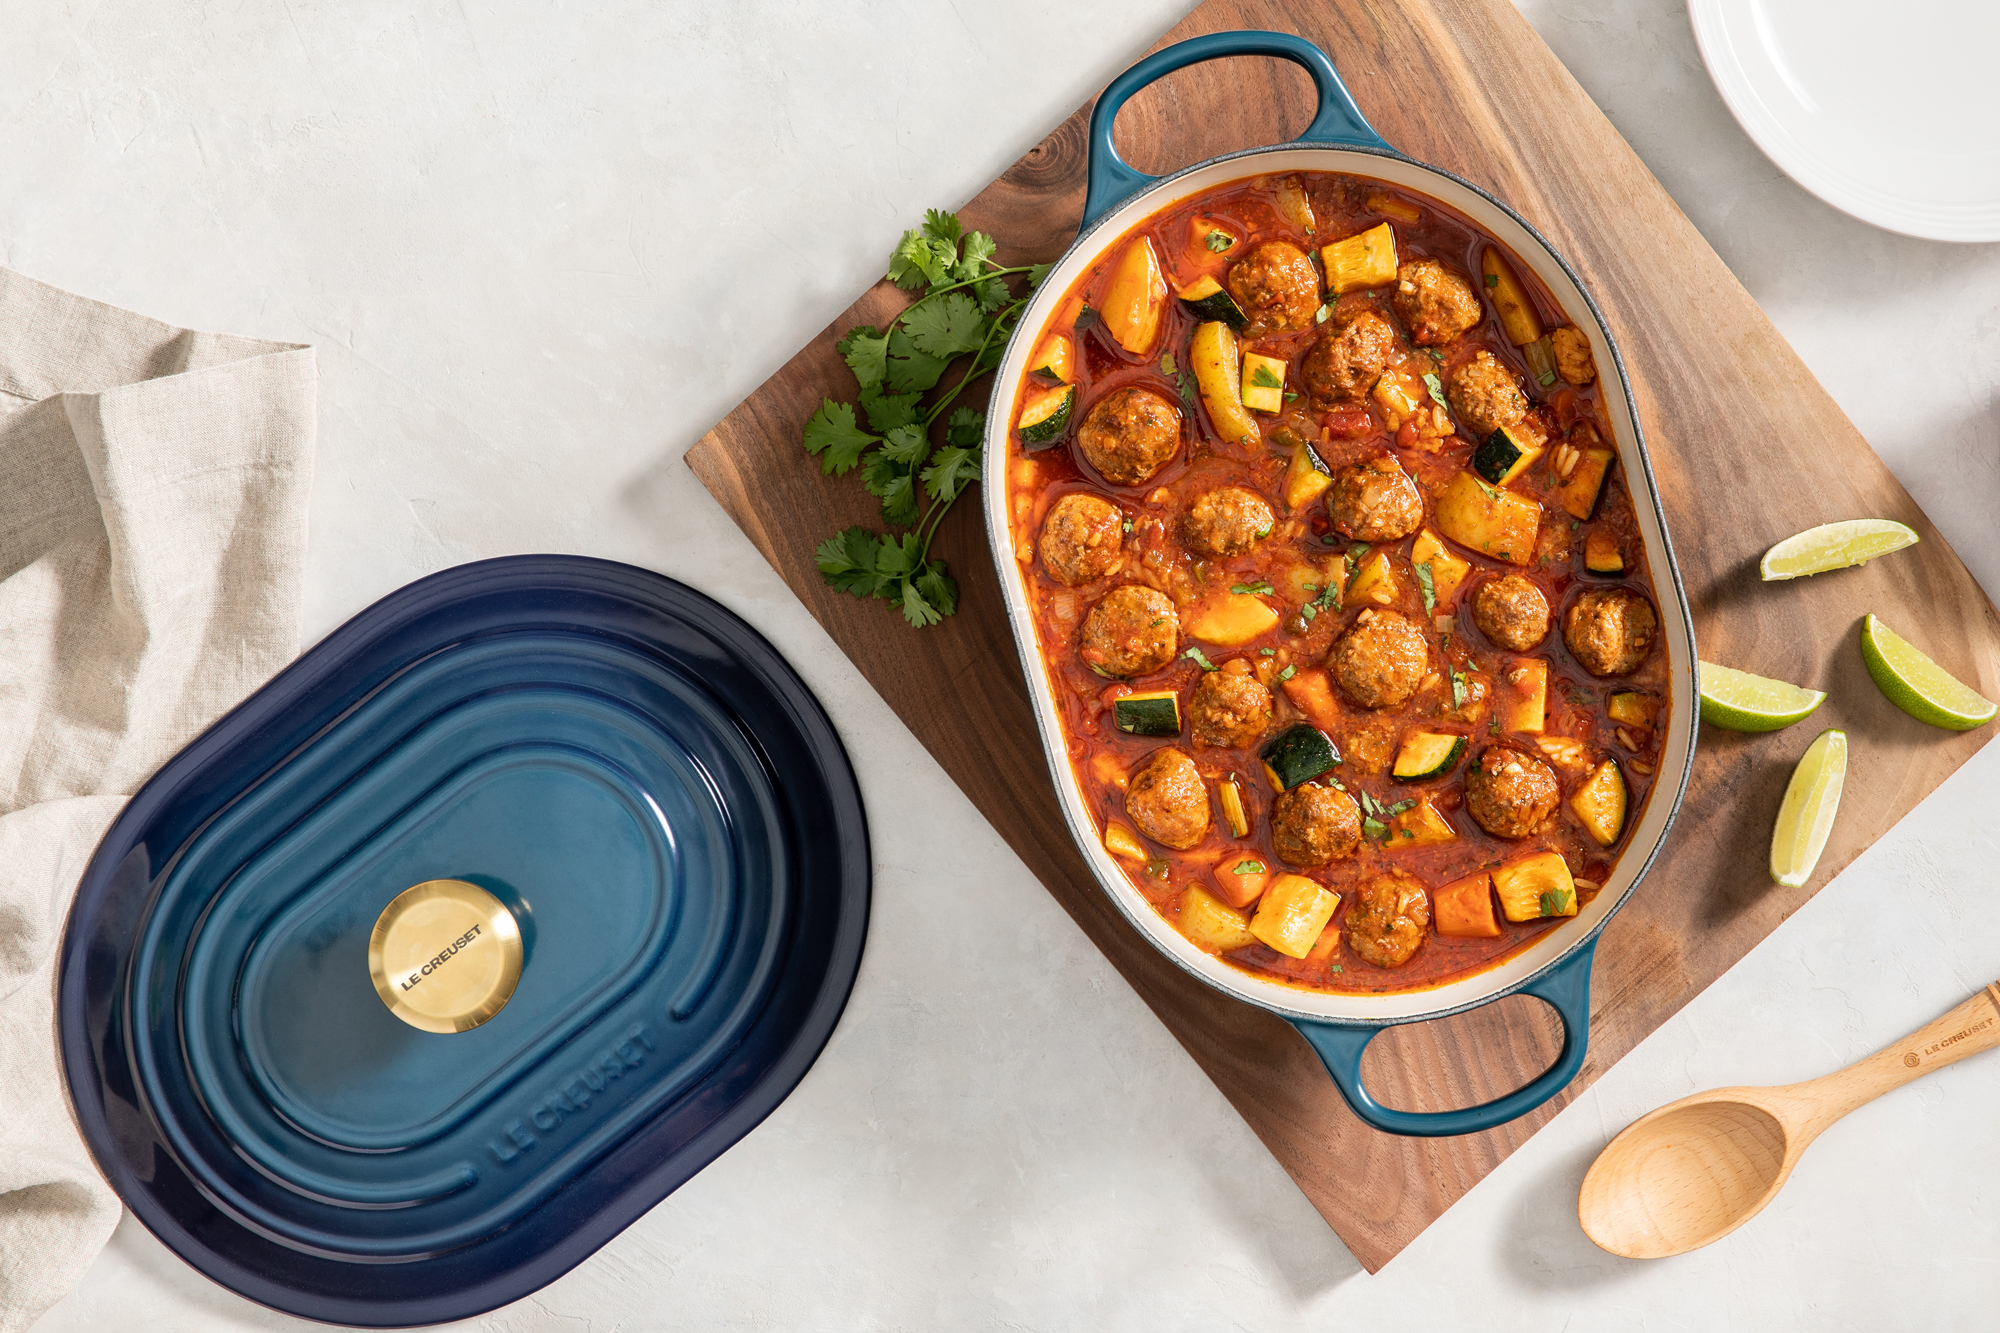 Le Creuset agave oval oven